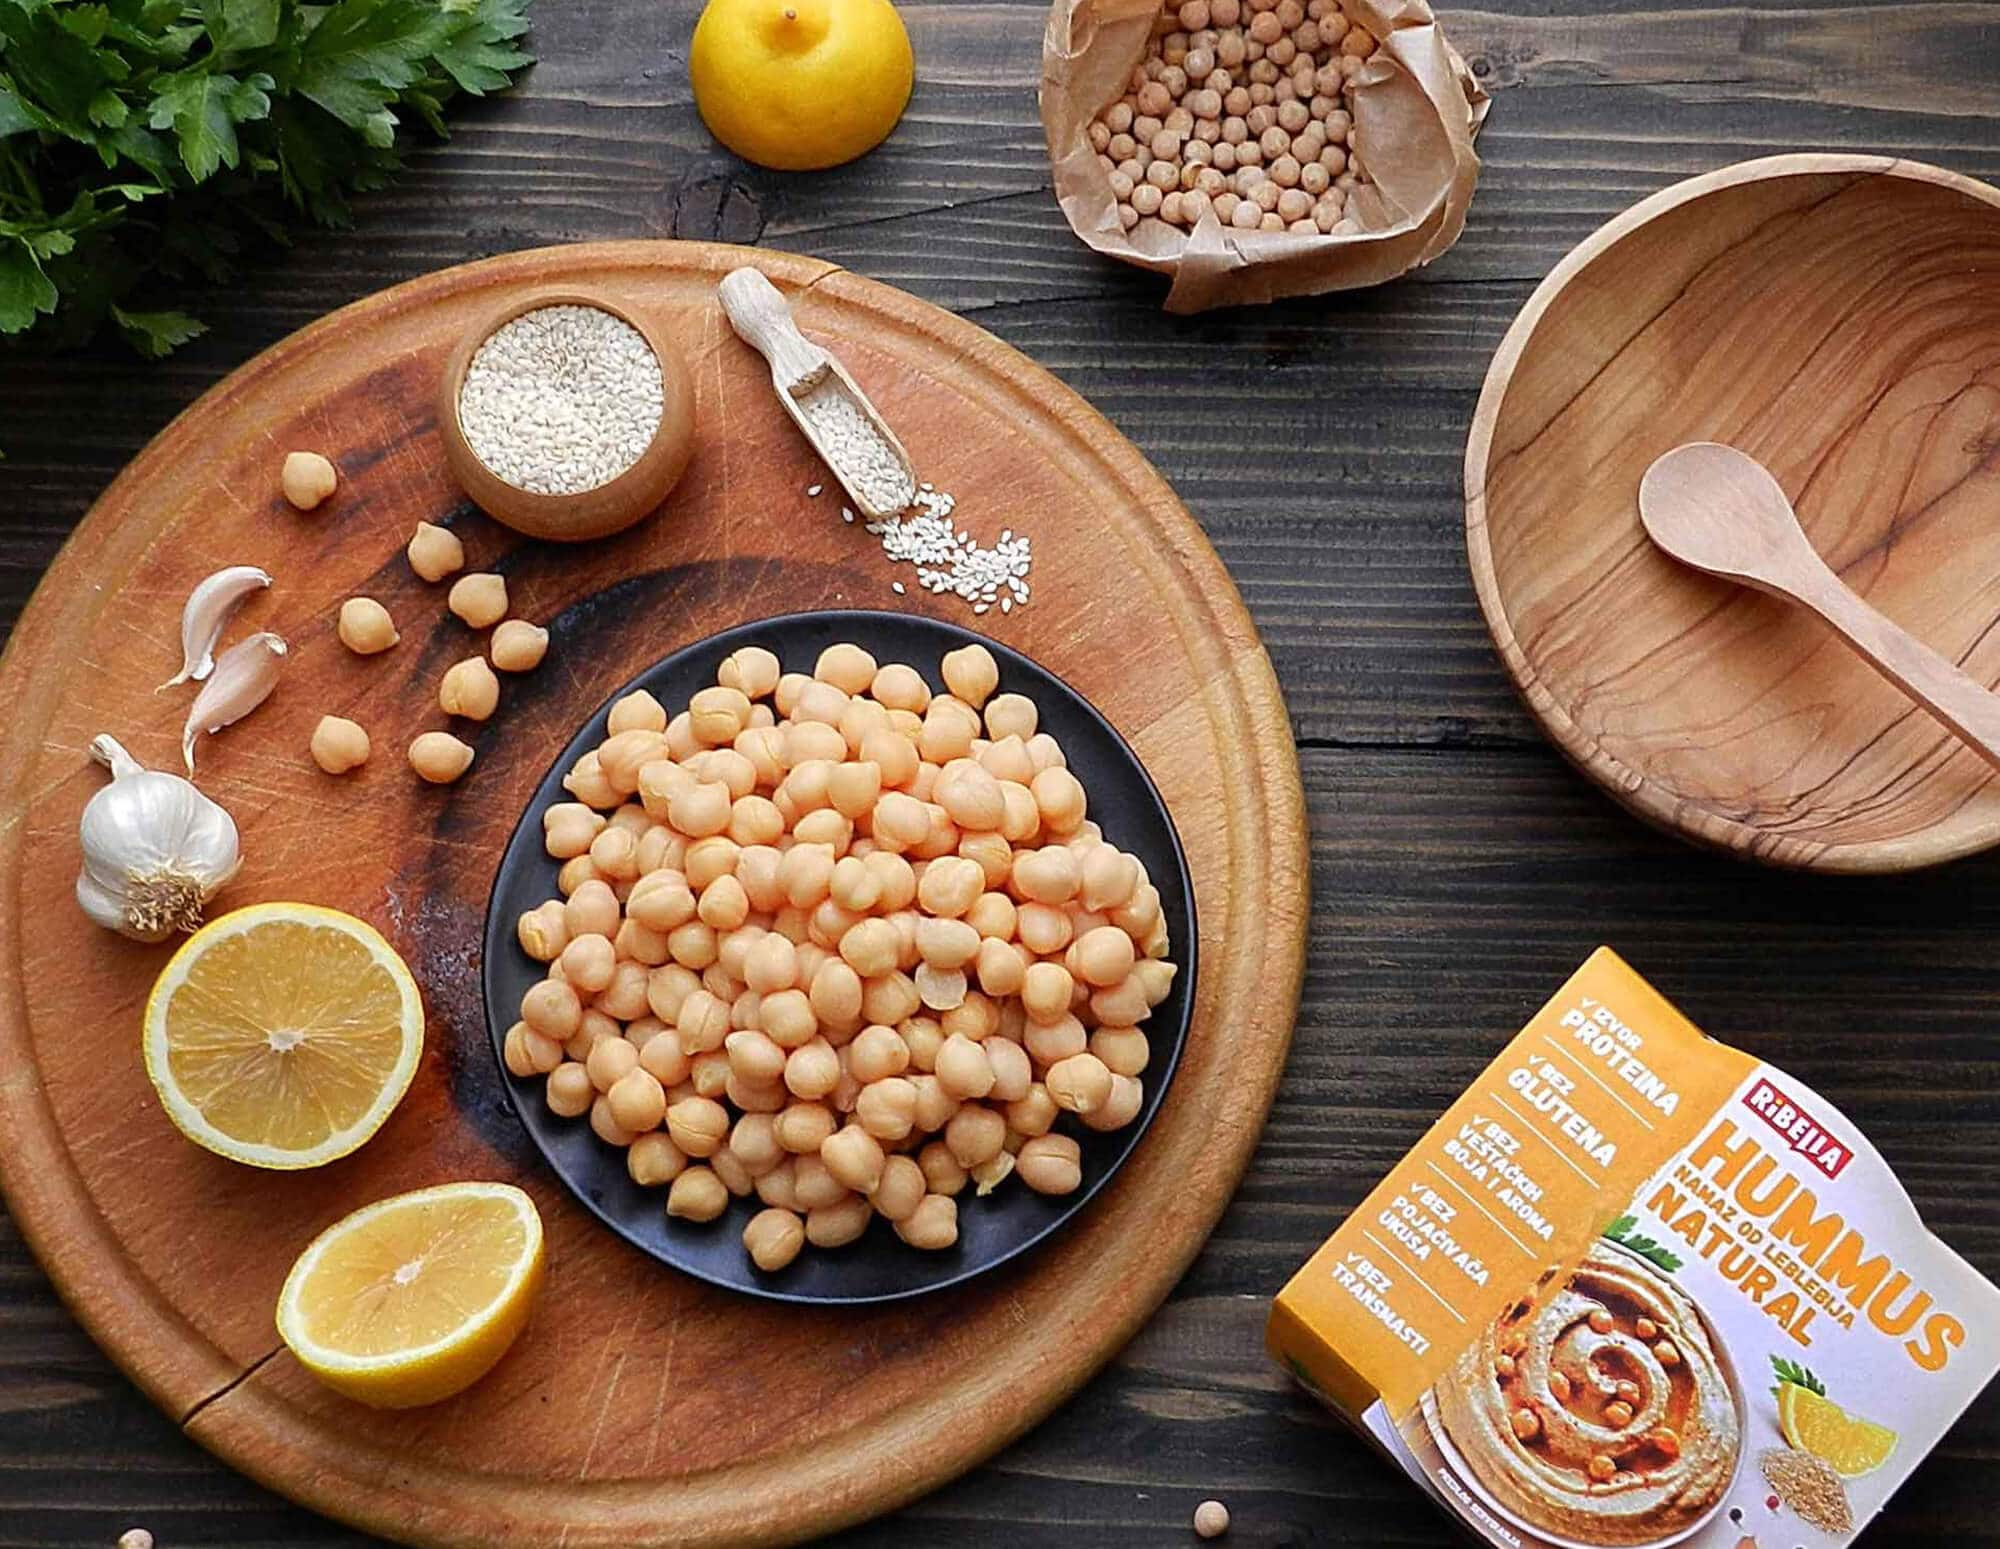 Ten reasons to give hummus a try